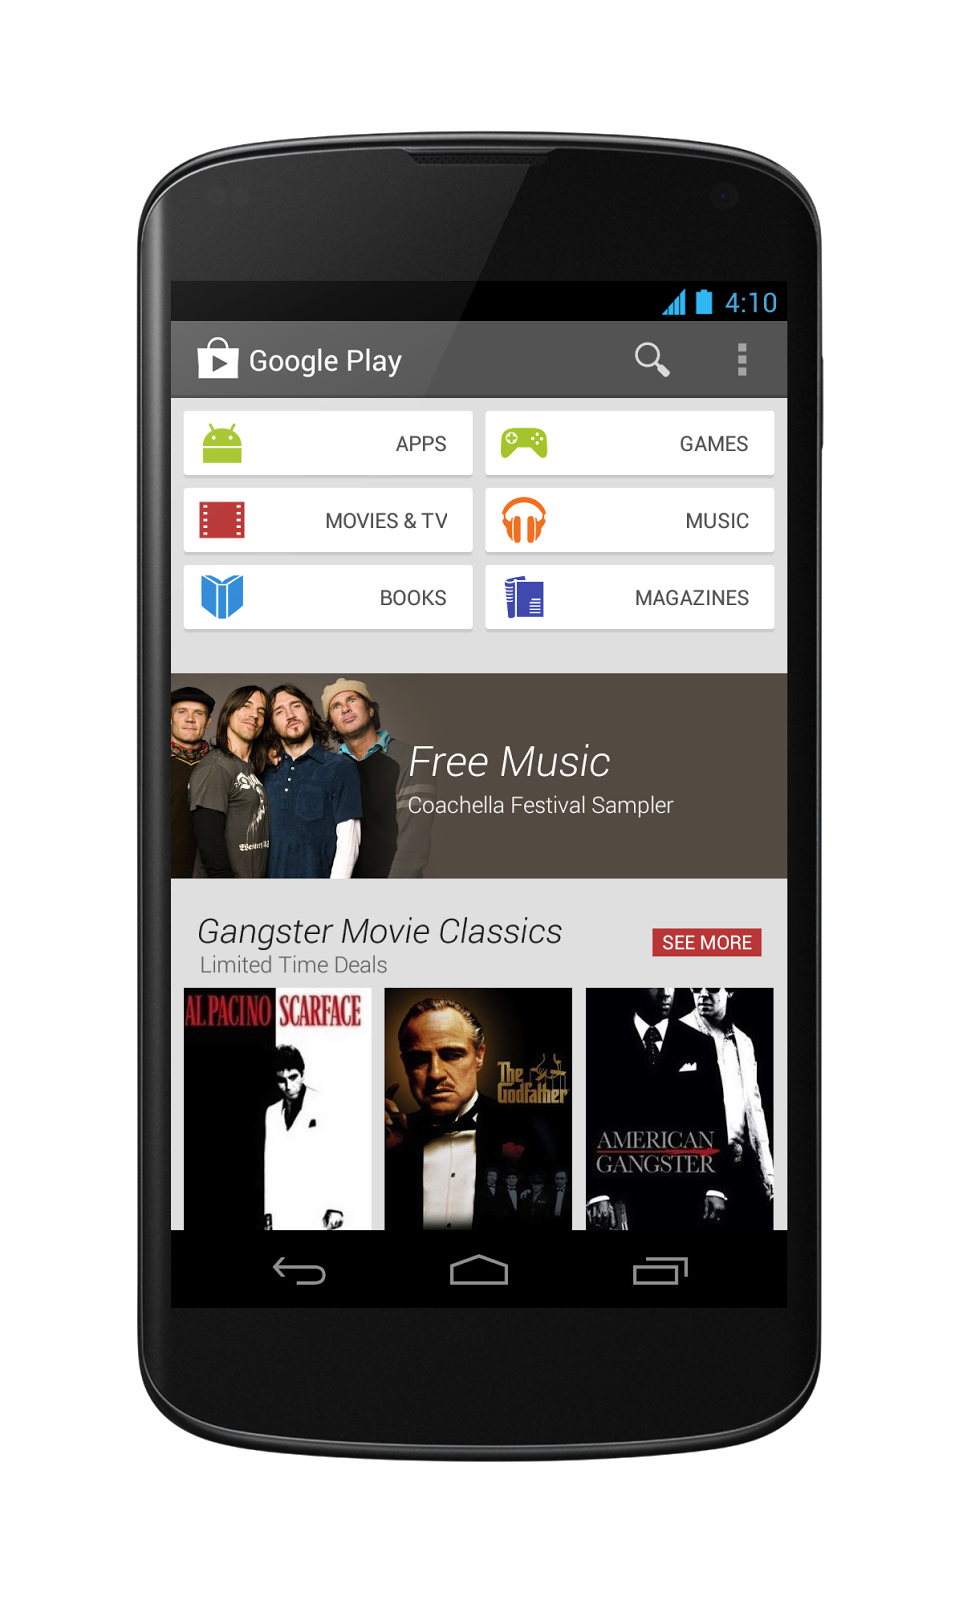 The new Google Play Store on a Nexus 4